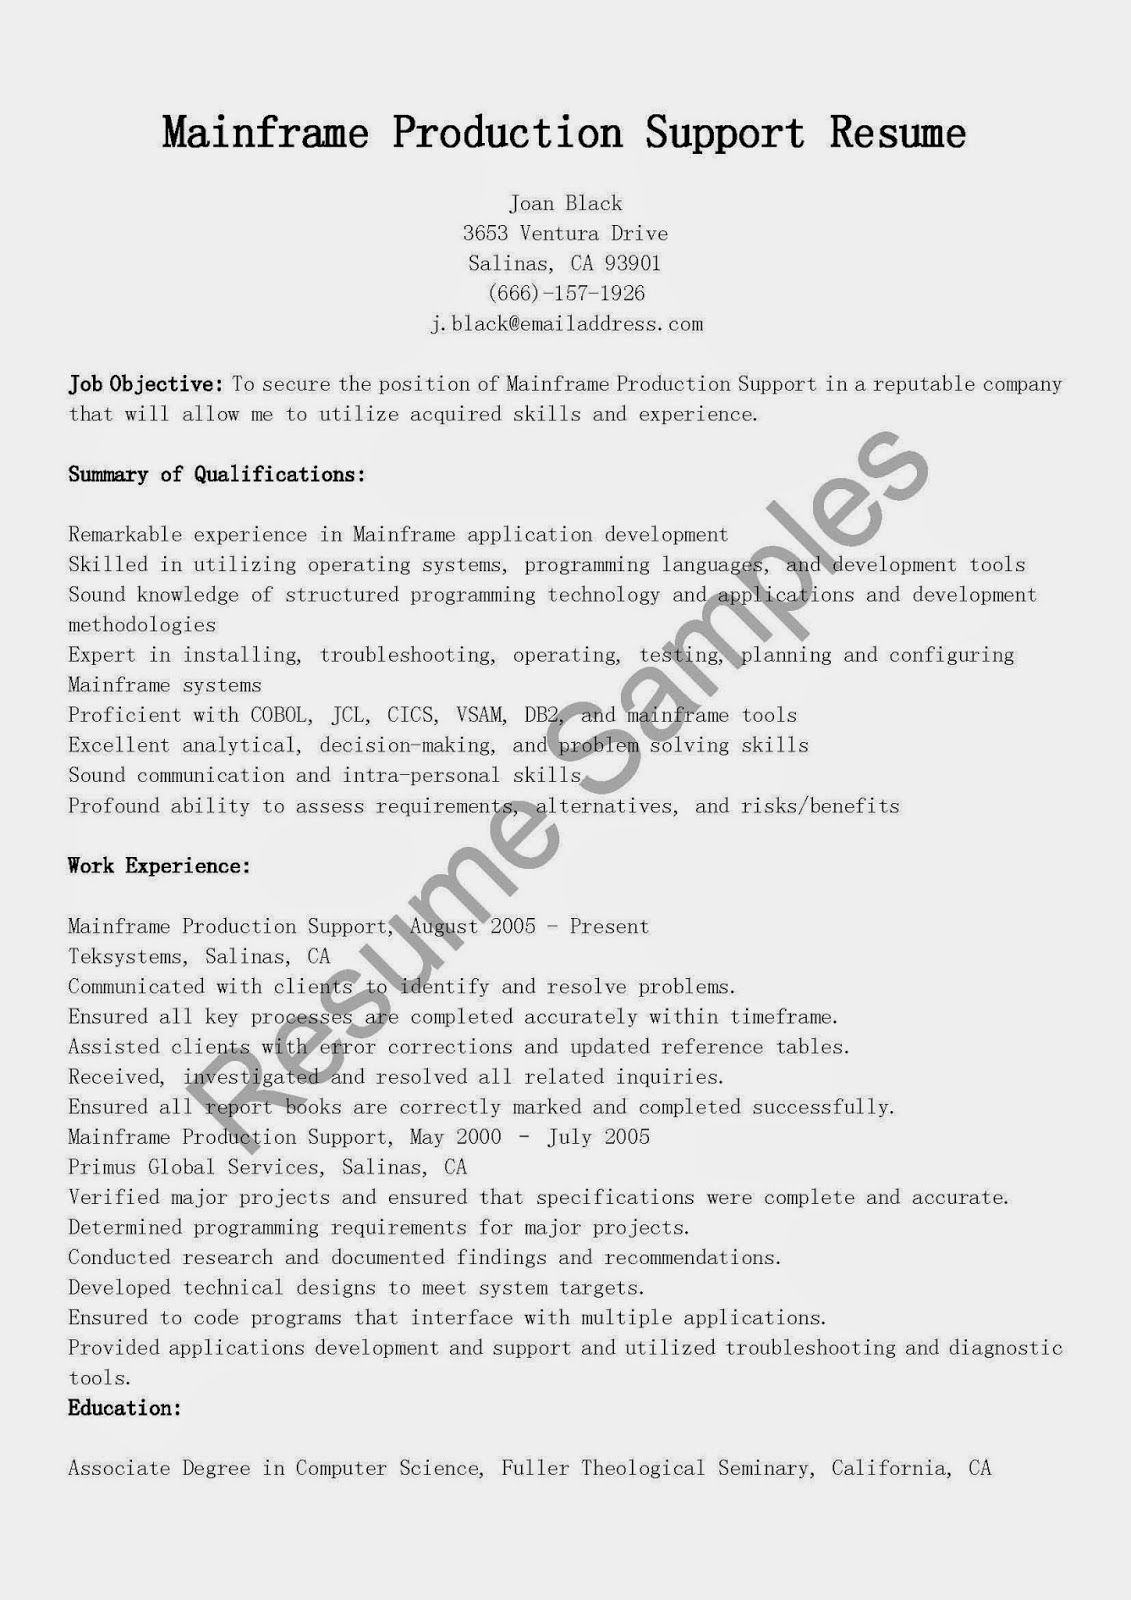 production support resume examples